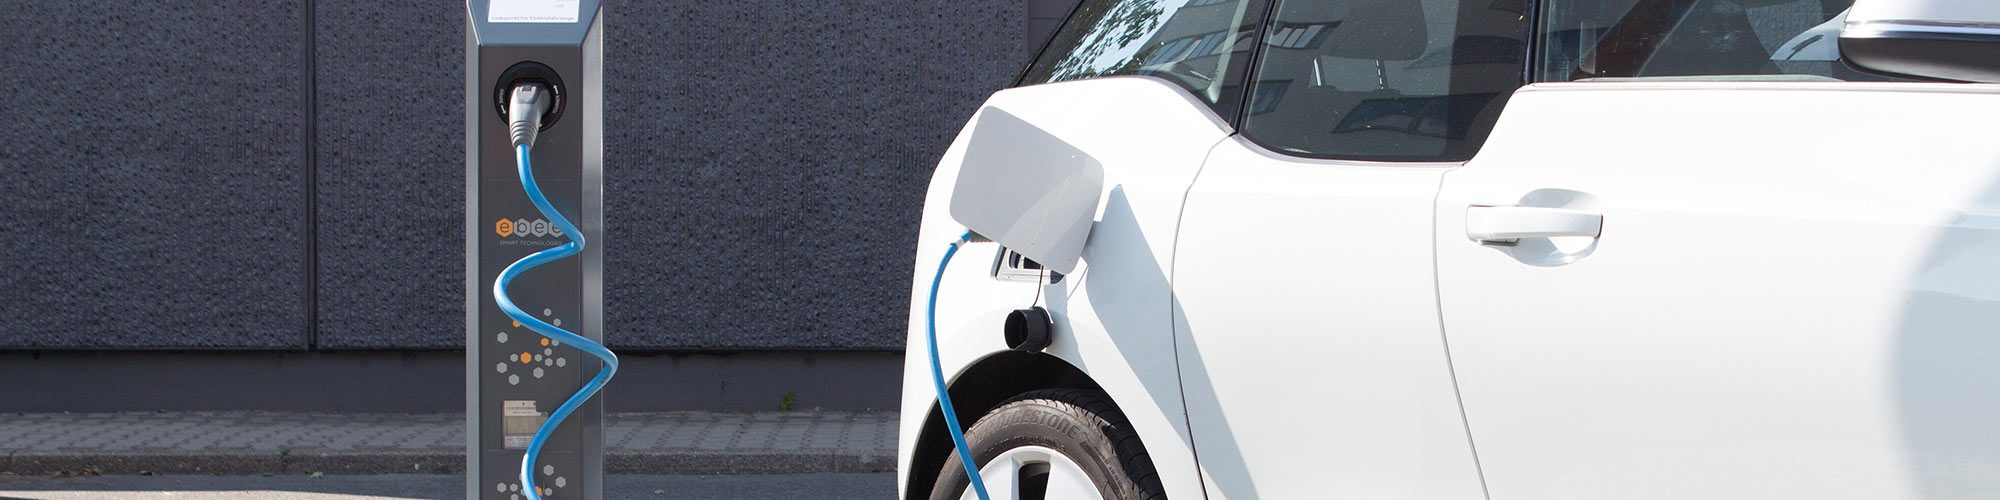 Using the charging technology for electric vehicles safely